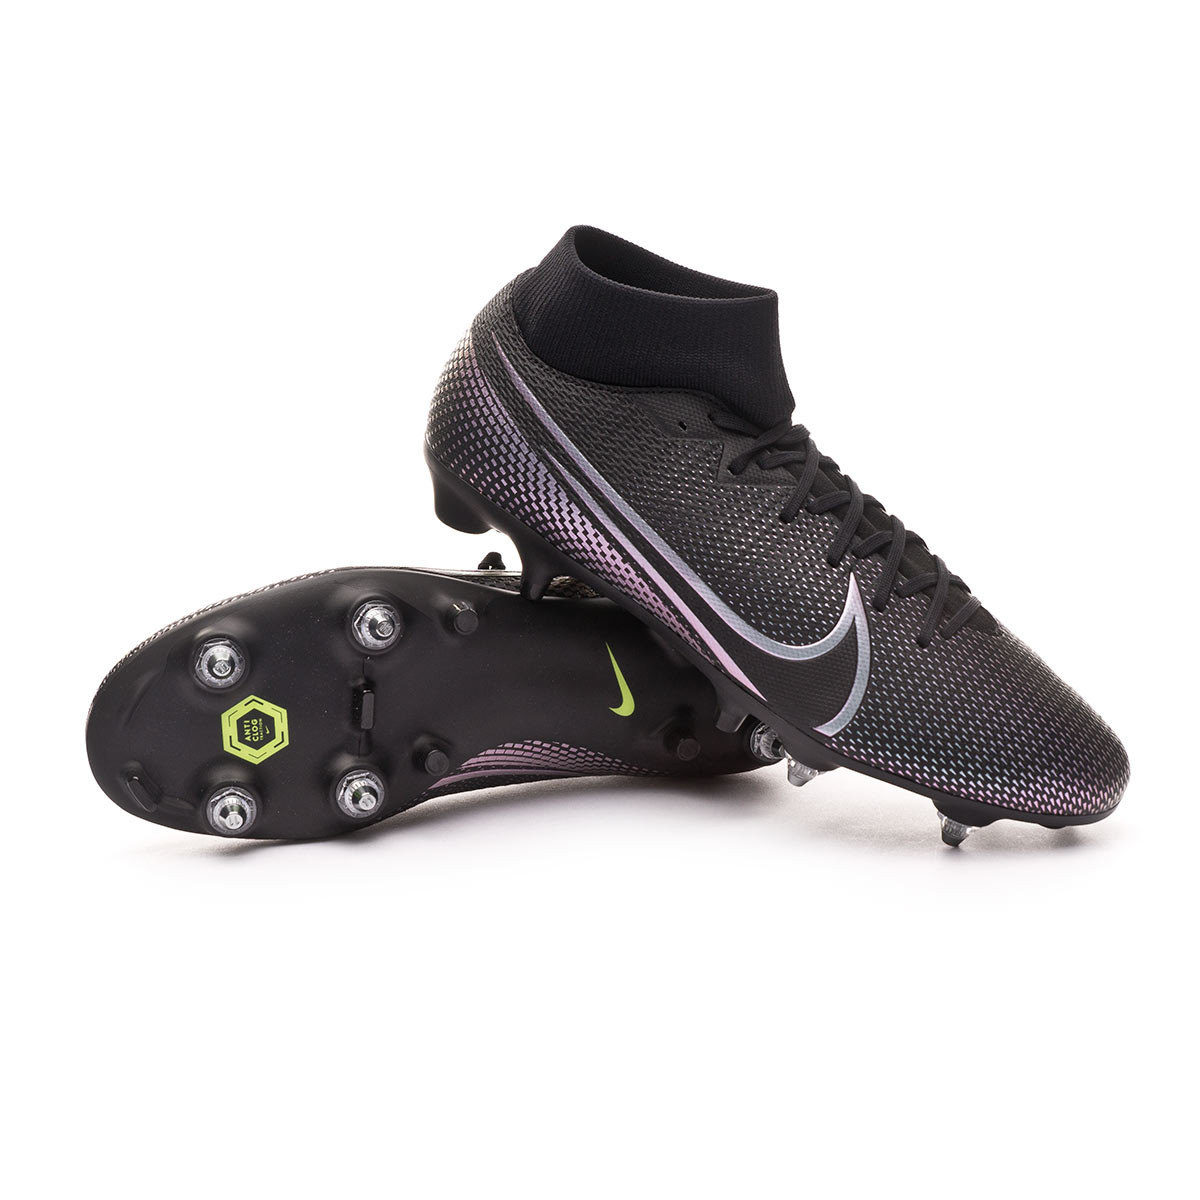 Chaussure de foot Nike Mercurial Superfly VII Academy SG PRO Anti Clog Traction